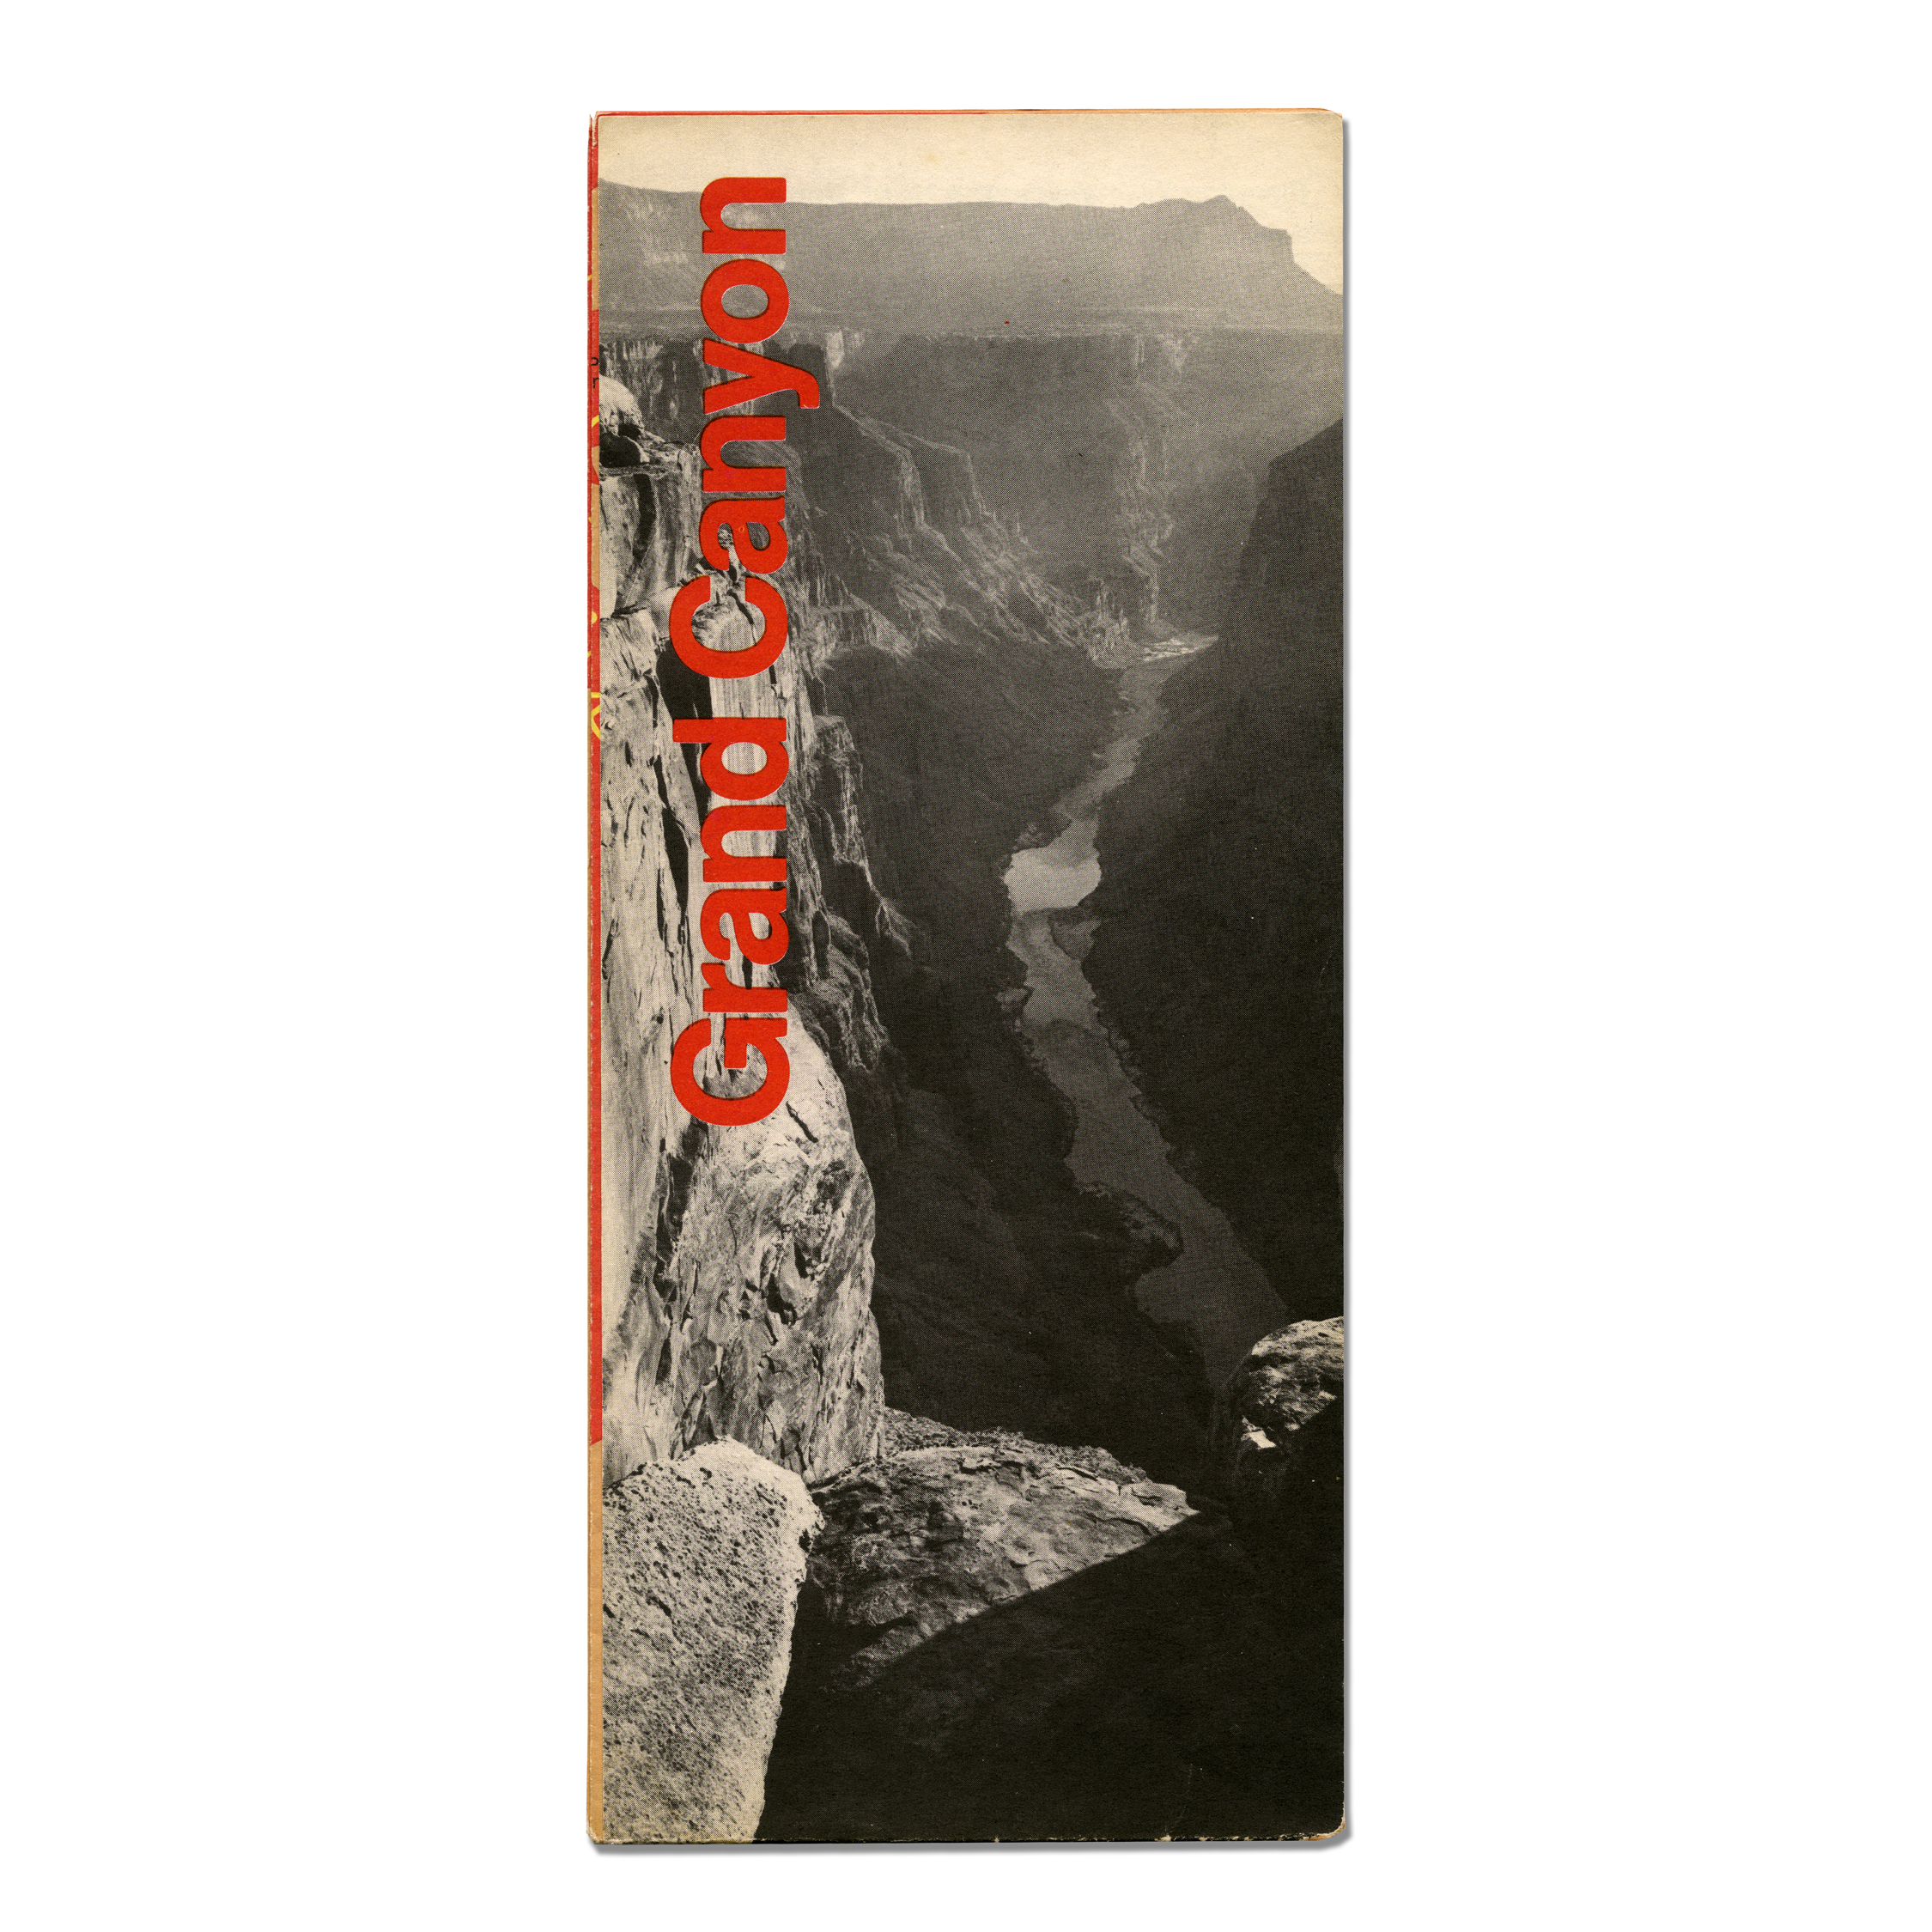 1978_grand_canyon_national_park_brochure.jpg